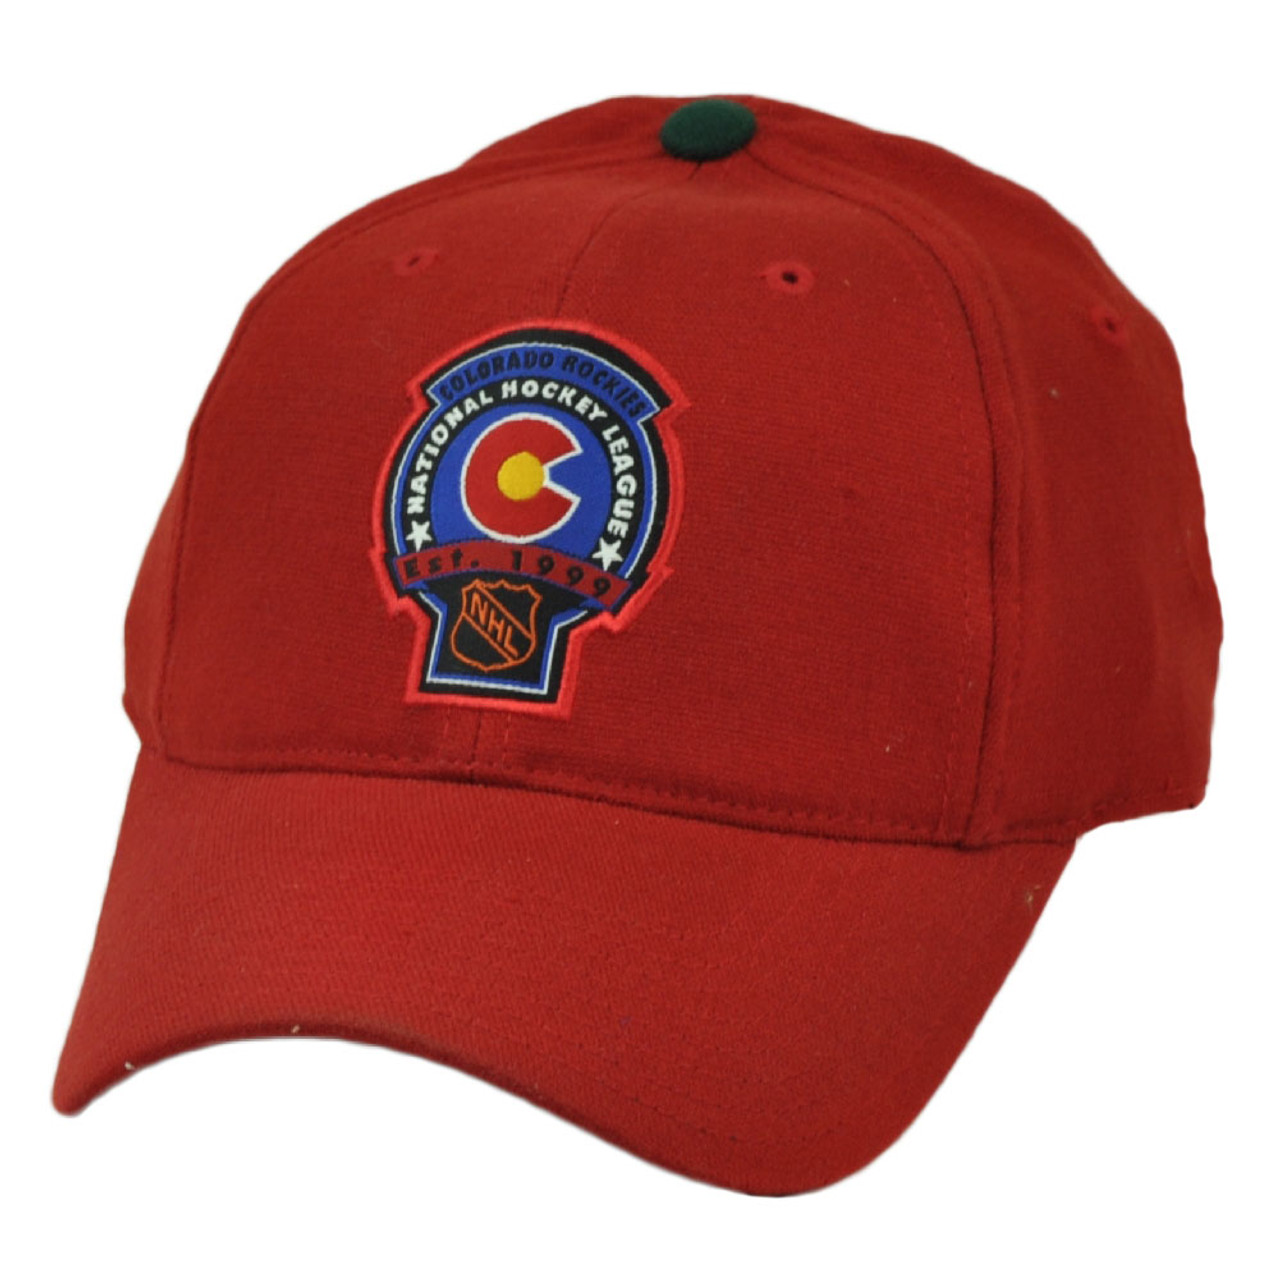 69f5a2b6f79db NHL American Needle Colorado Rockies Flex Fit Large XLarge Stretch Hat Cap  Red - Cap Store Online.com